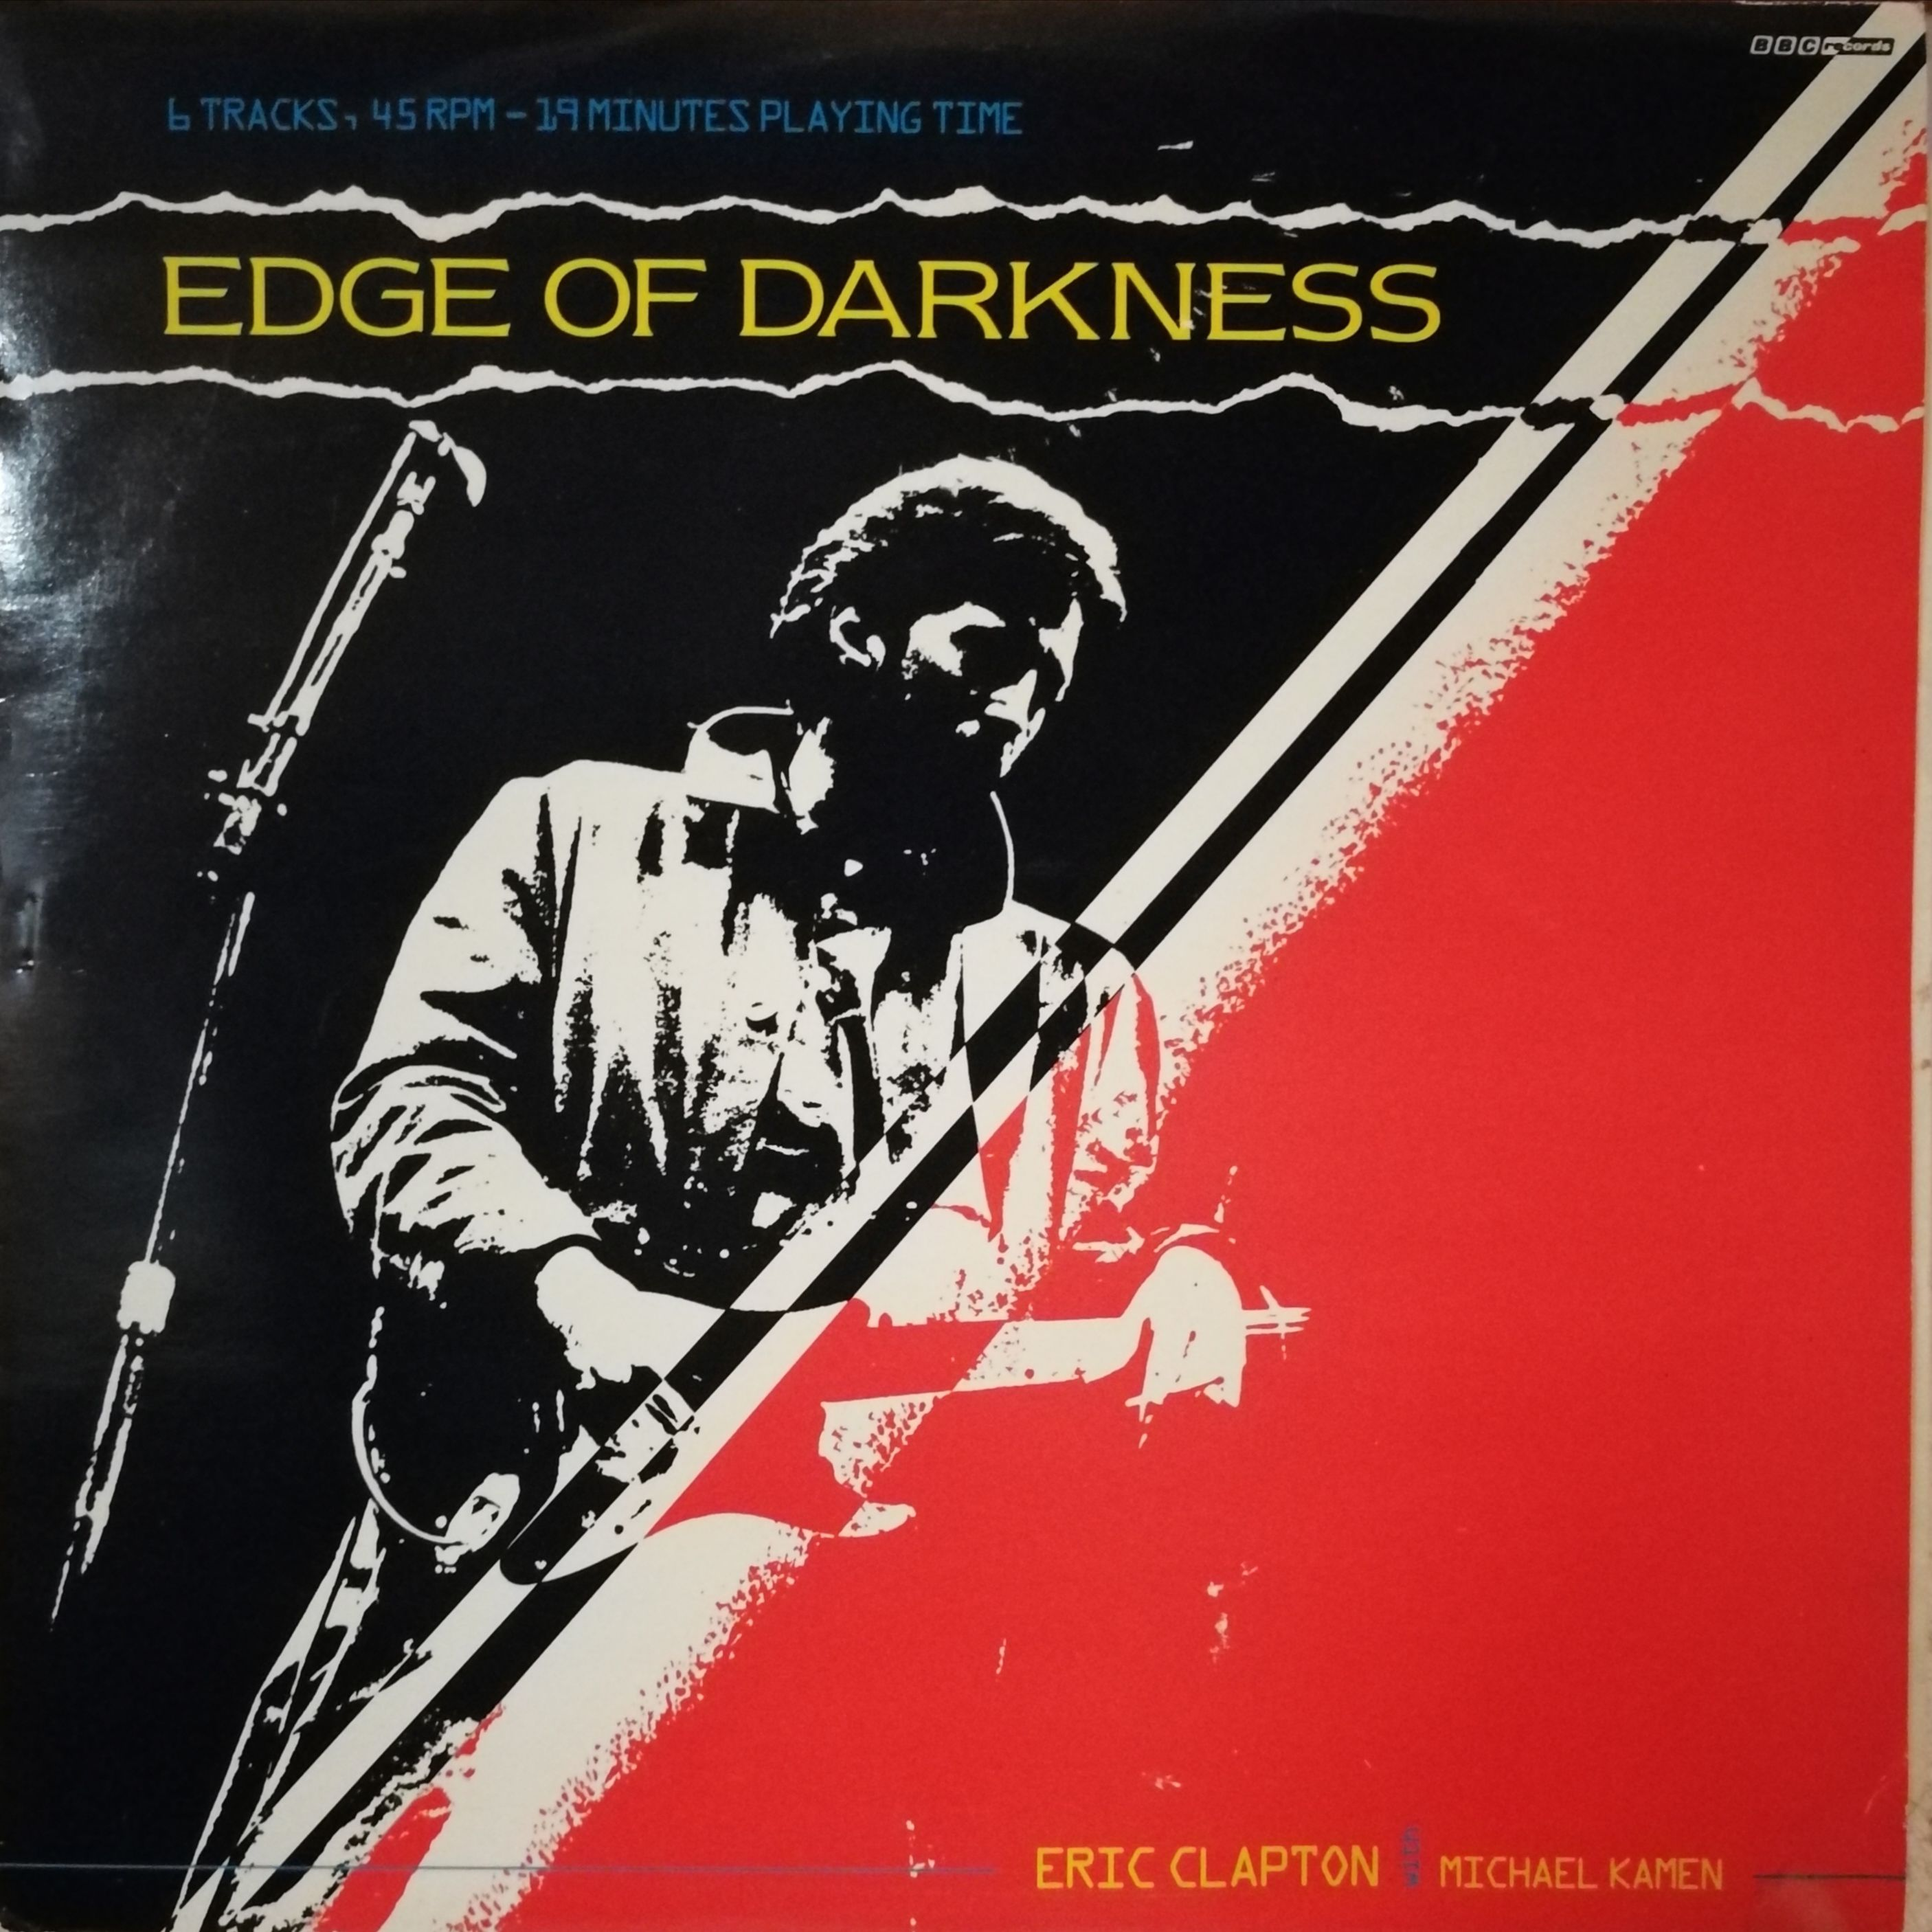 Eric Clapton with Michael Kamen Edge of Darkness LP undefined